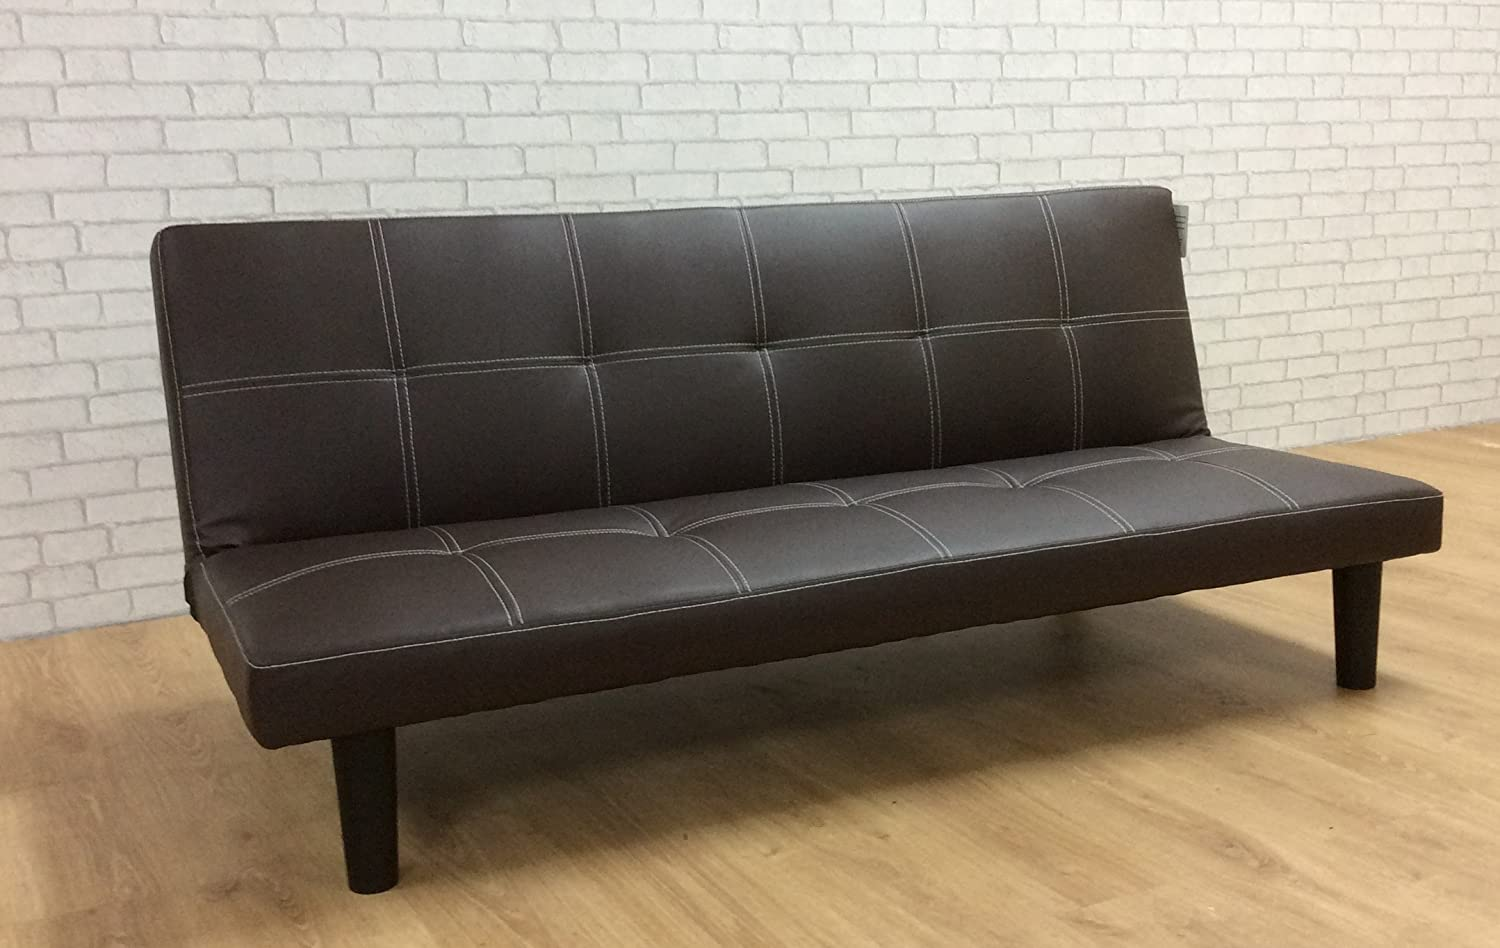 Comfy Living Single Faux Leather Sofa Bed in Dark Brown Spencer Sofabed